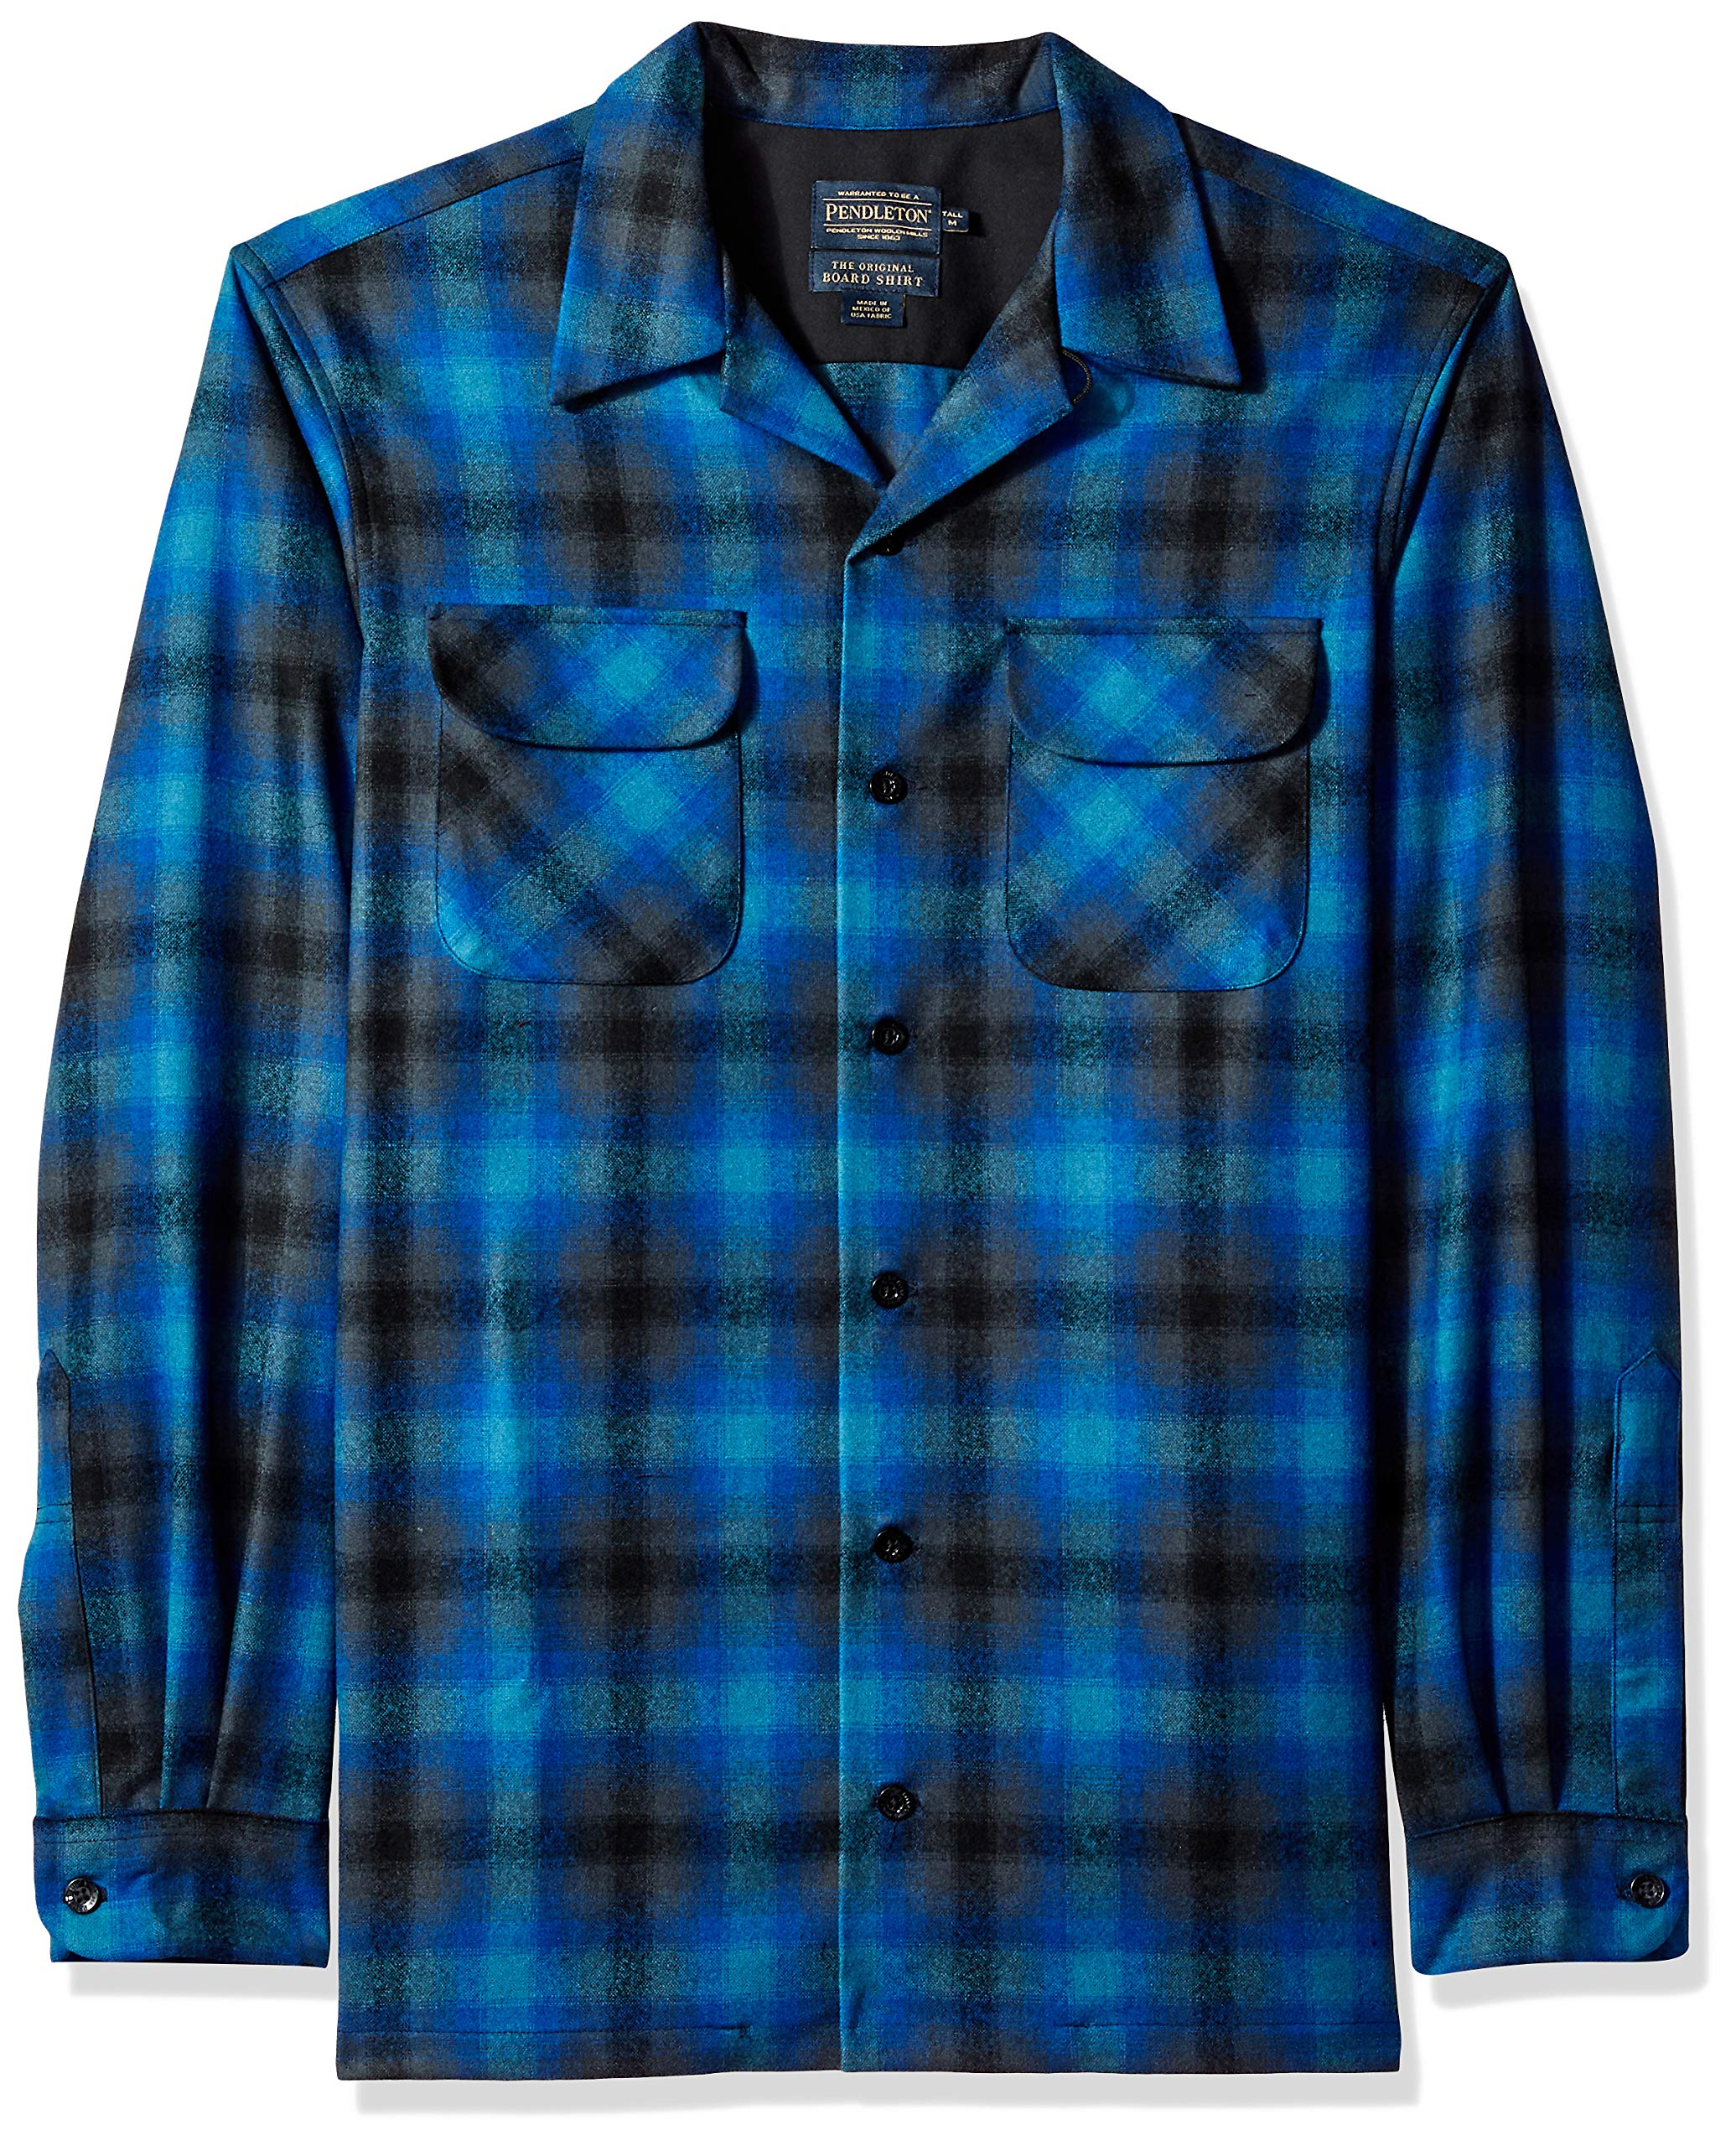 Pendleton Men's Size Big & Tall Long Sleeve Board Shirt, Black/Turquoise Ombre, XL-TALL